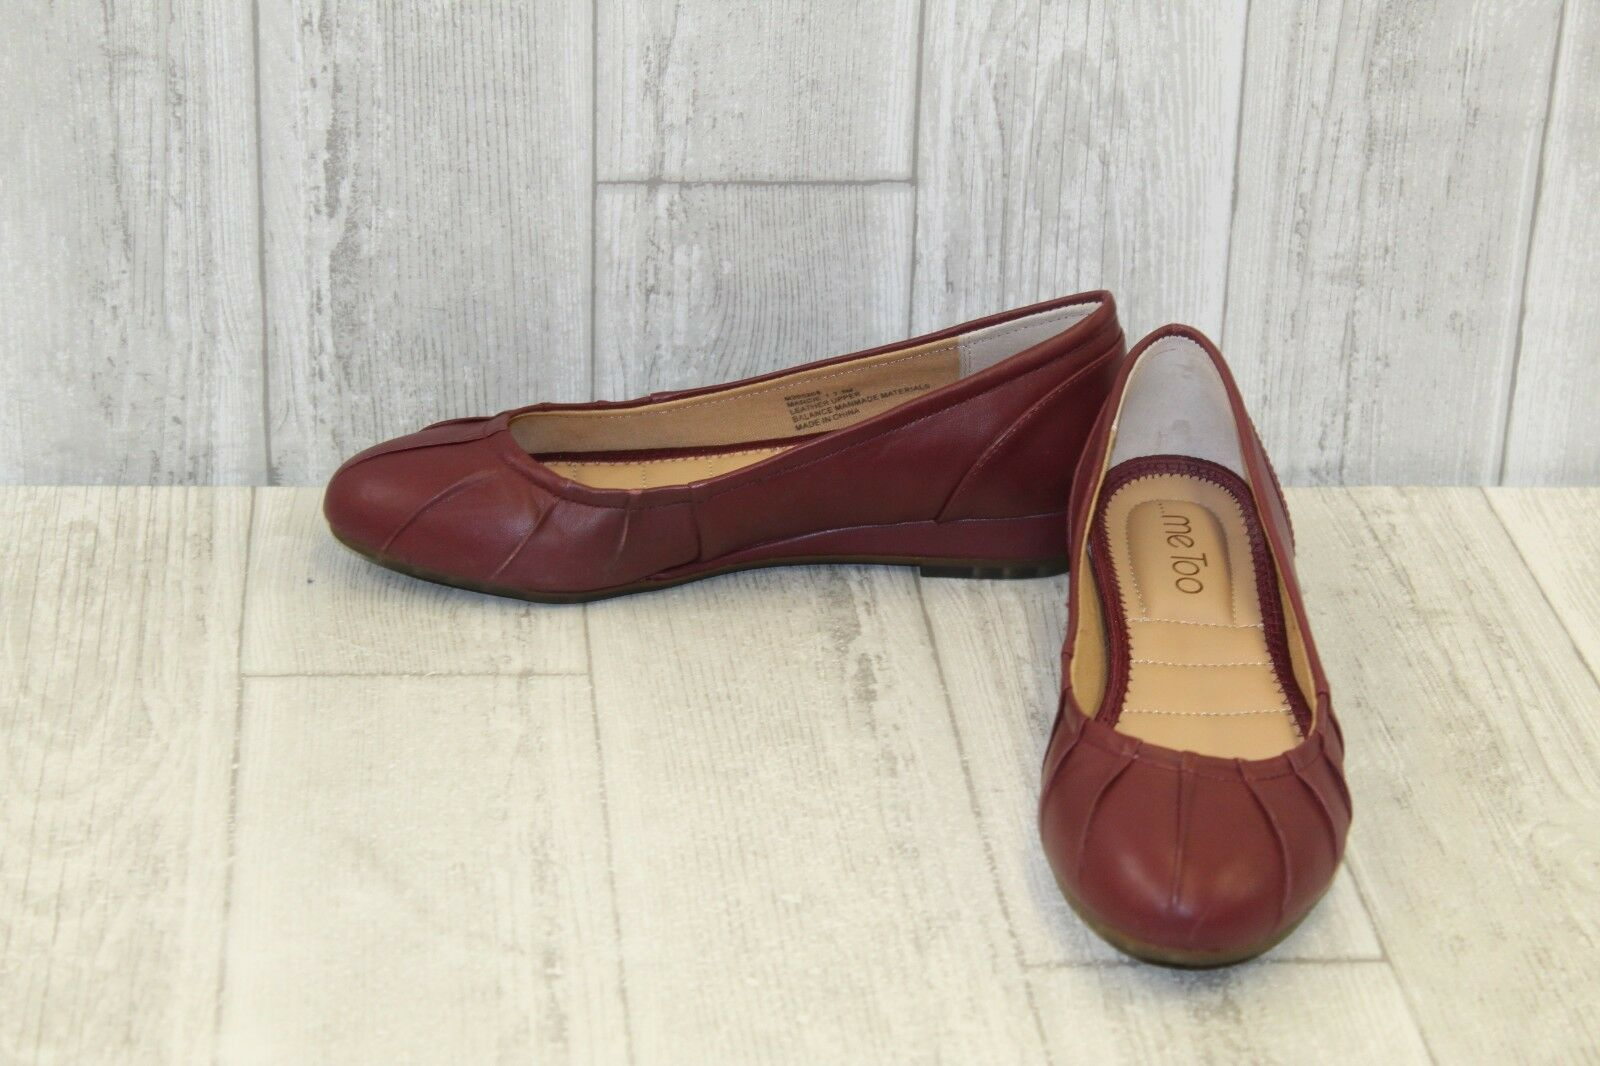 Me Too Marcie Pleated Wedge Pumps - Women's Size 7.5 M - Deep Wine